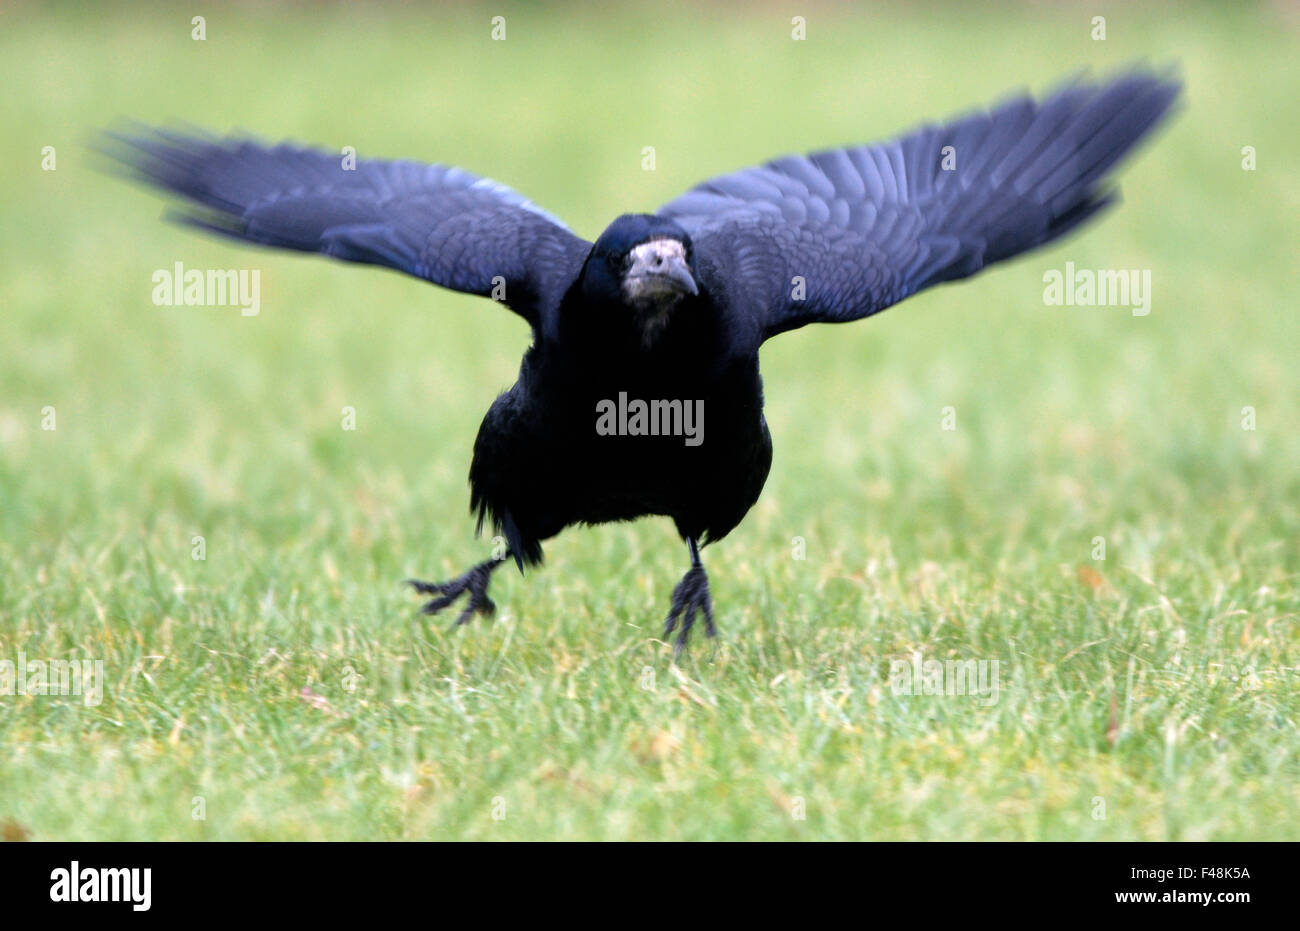 Black bird on the way to fly away - Stock Image